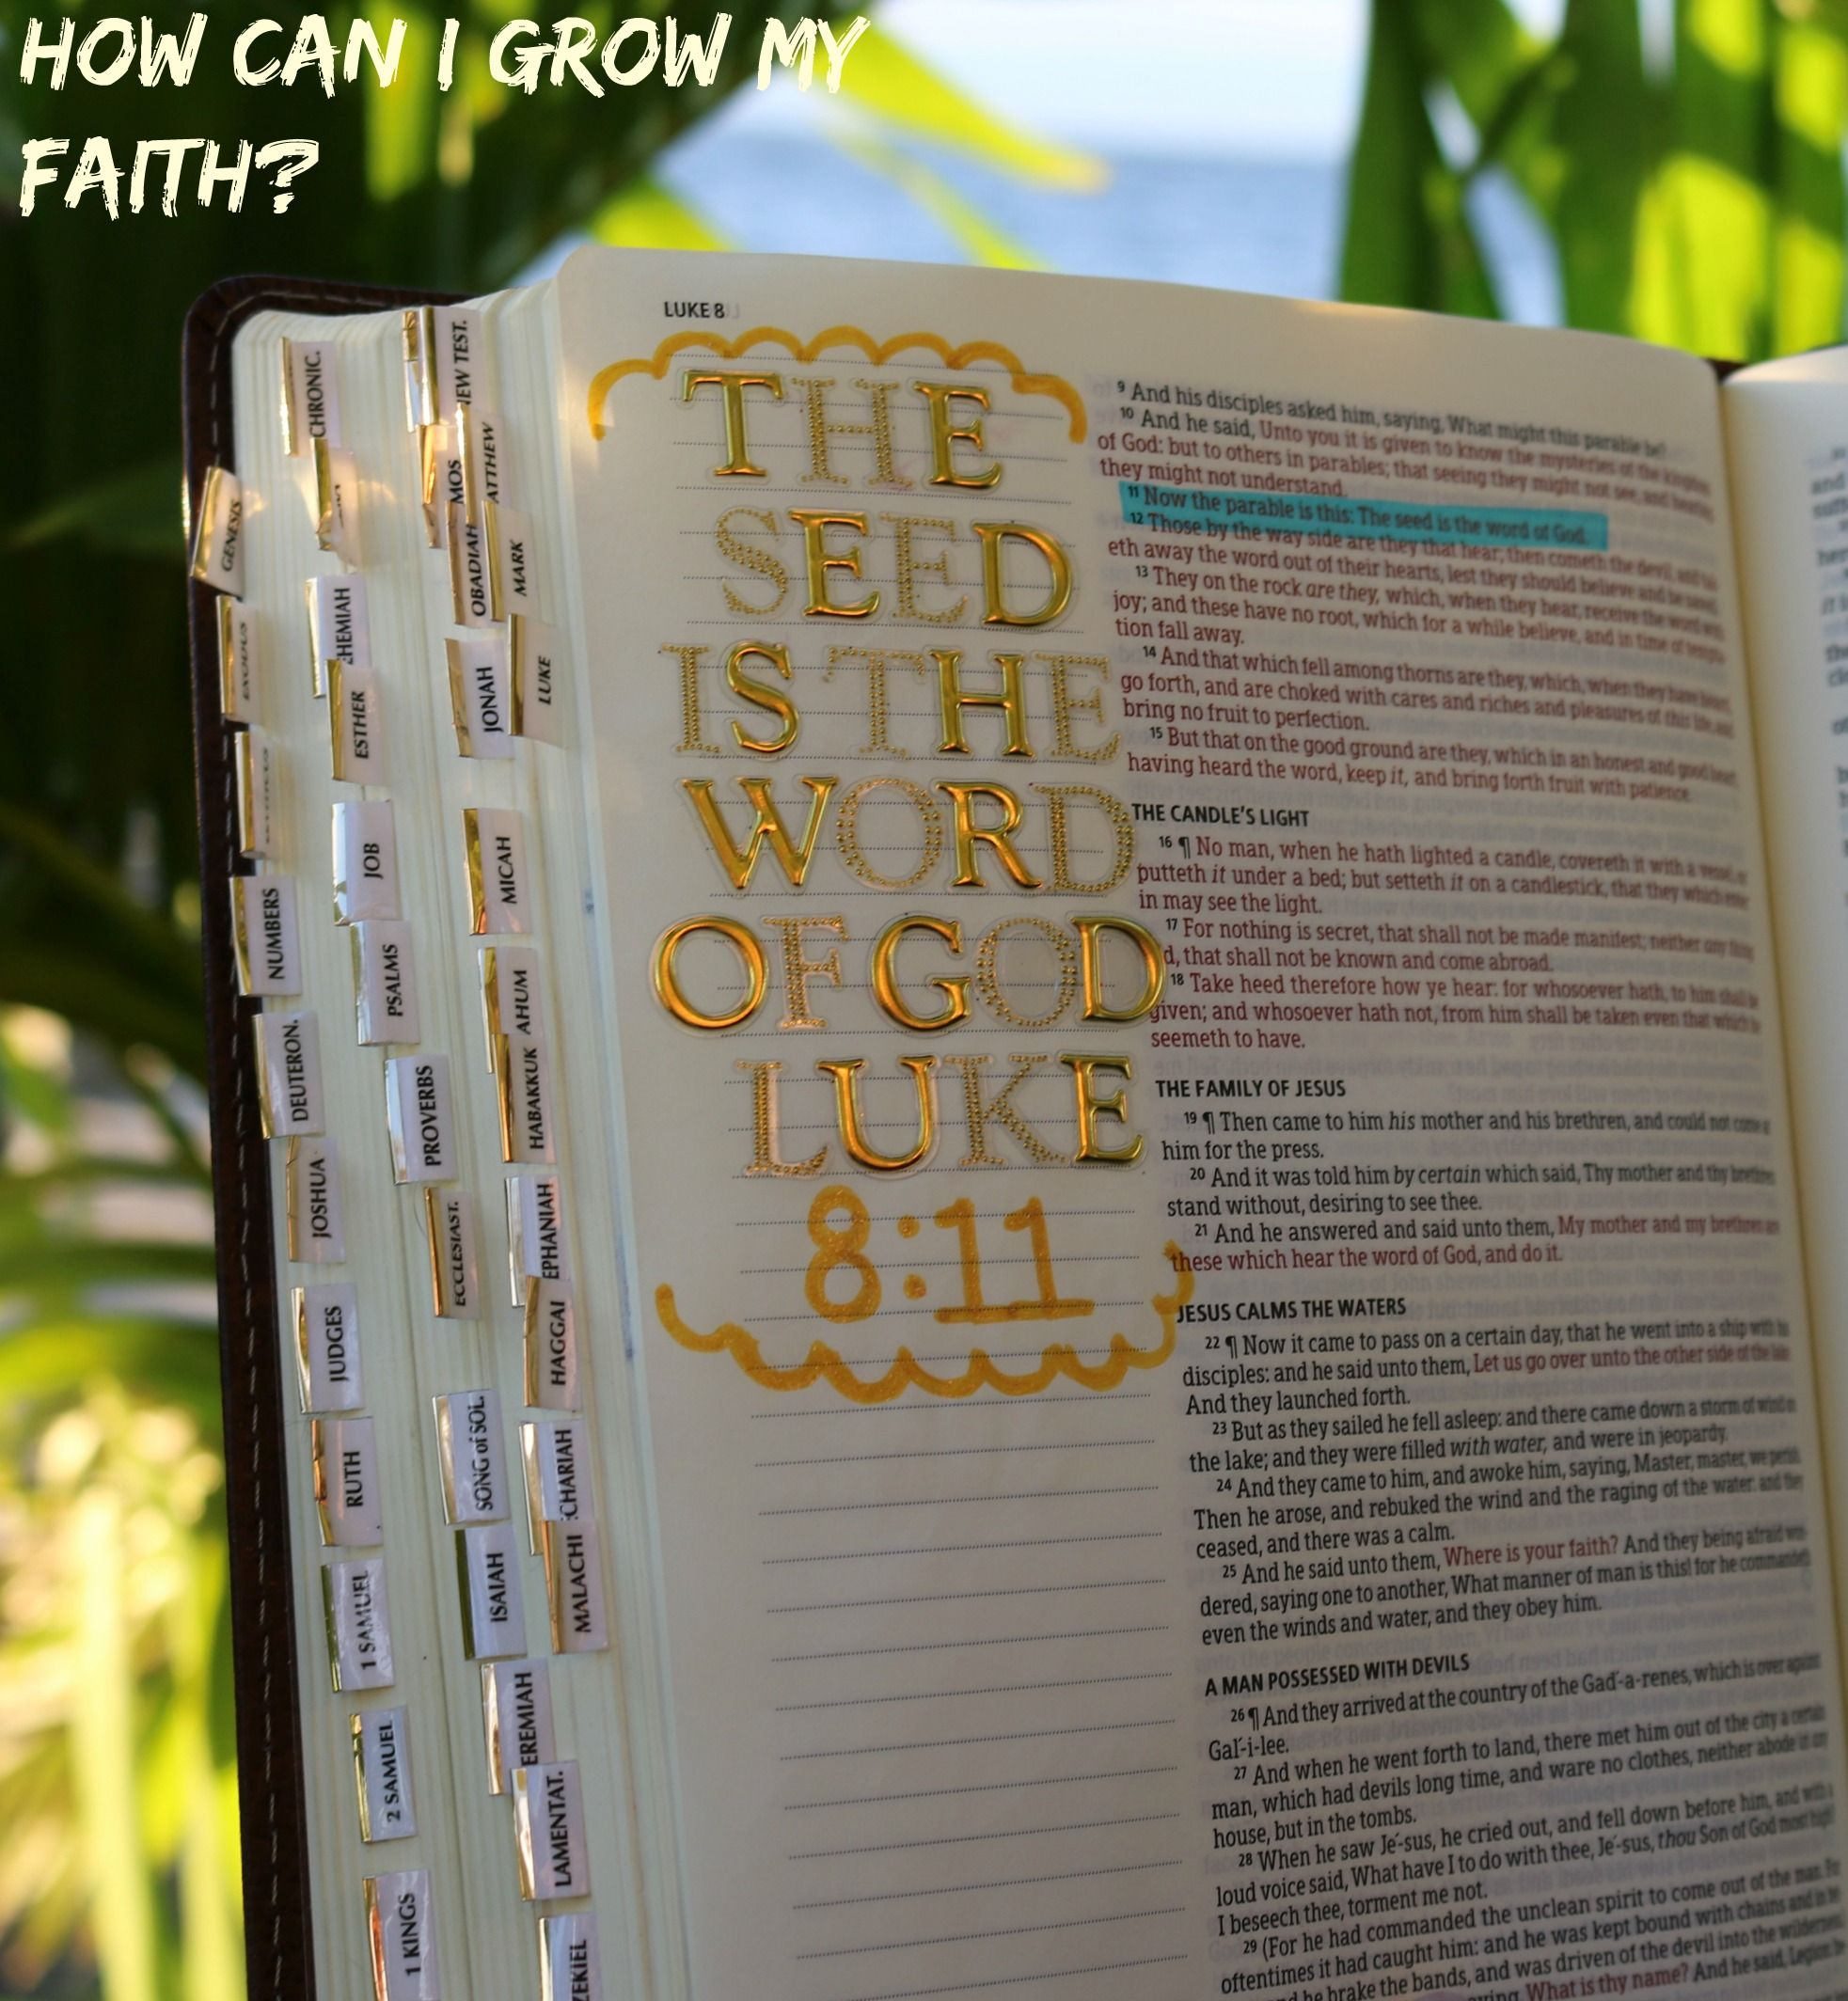 Learning how to creatively grow your faith and relationship with God through bible journaling/illustrated faith.